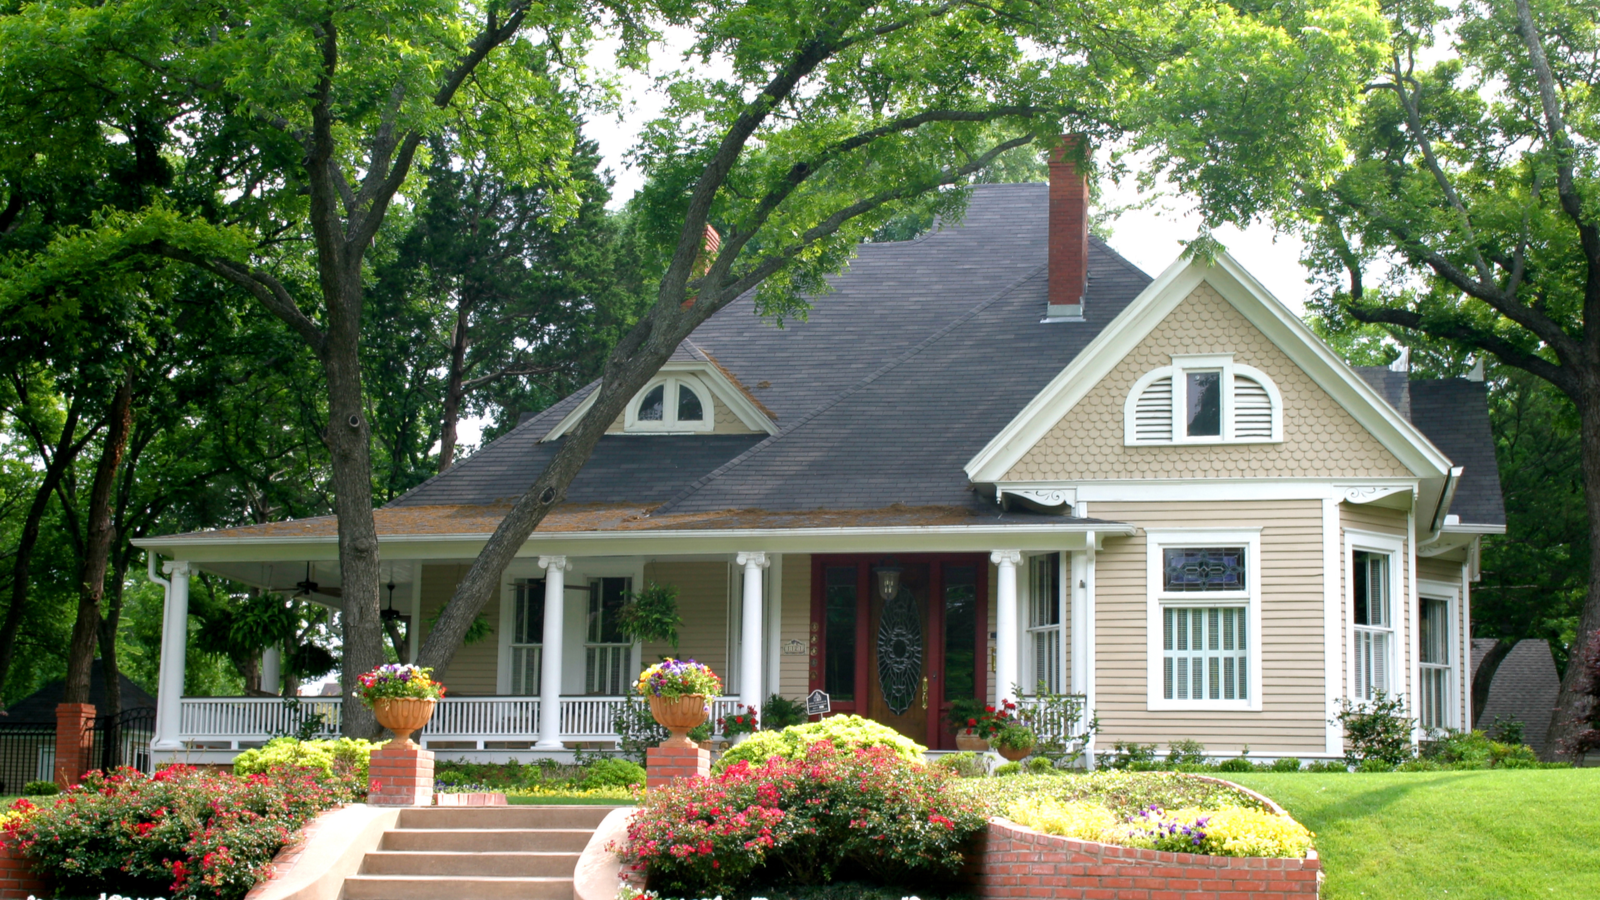 extremely colorful classic restored house in rural city with trees and covered porch